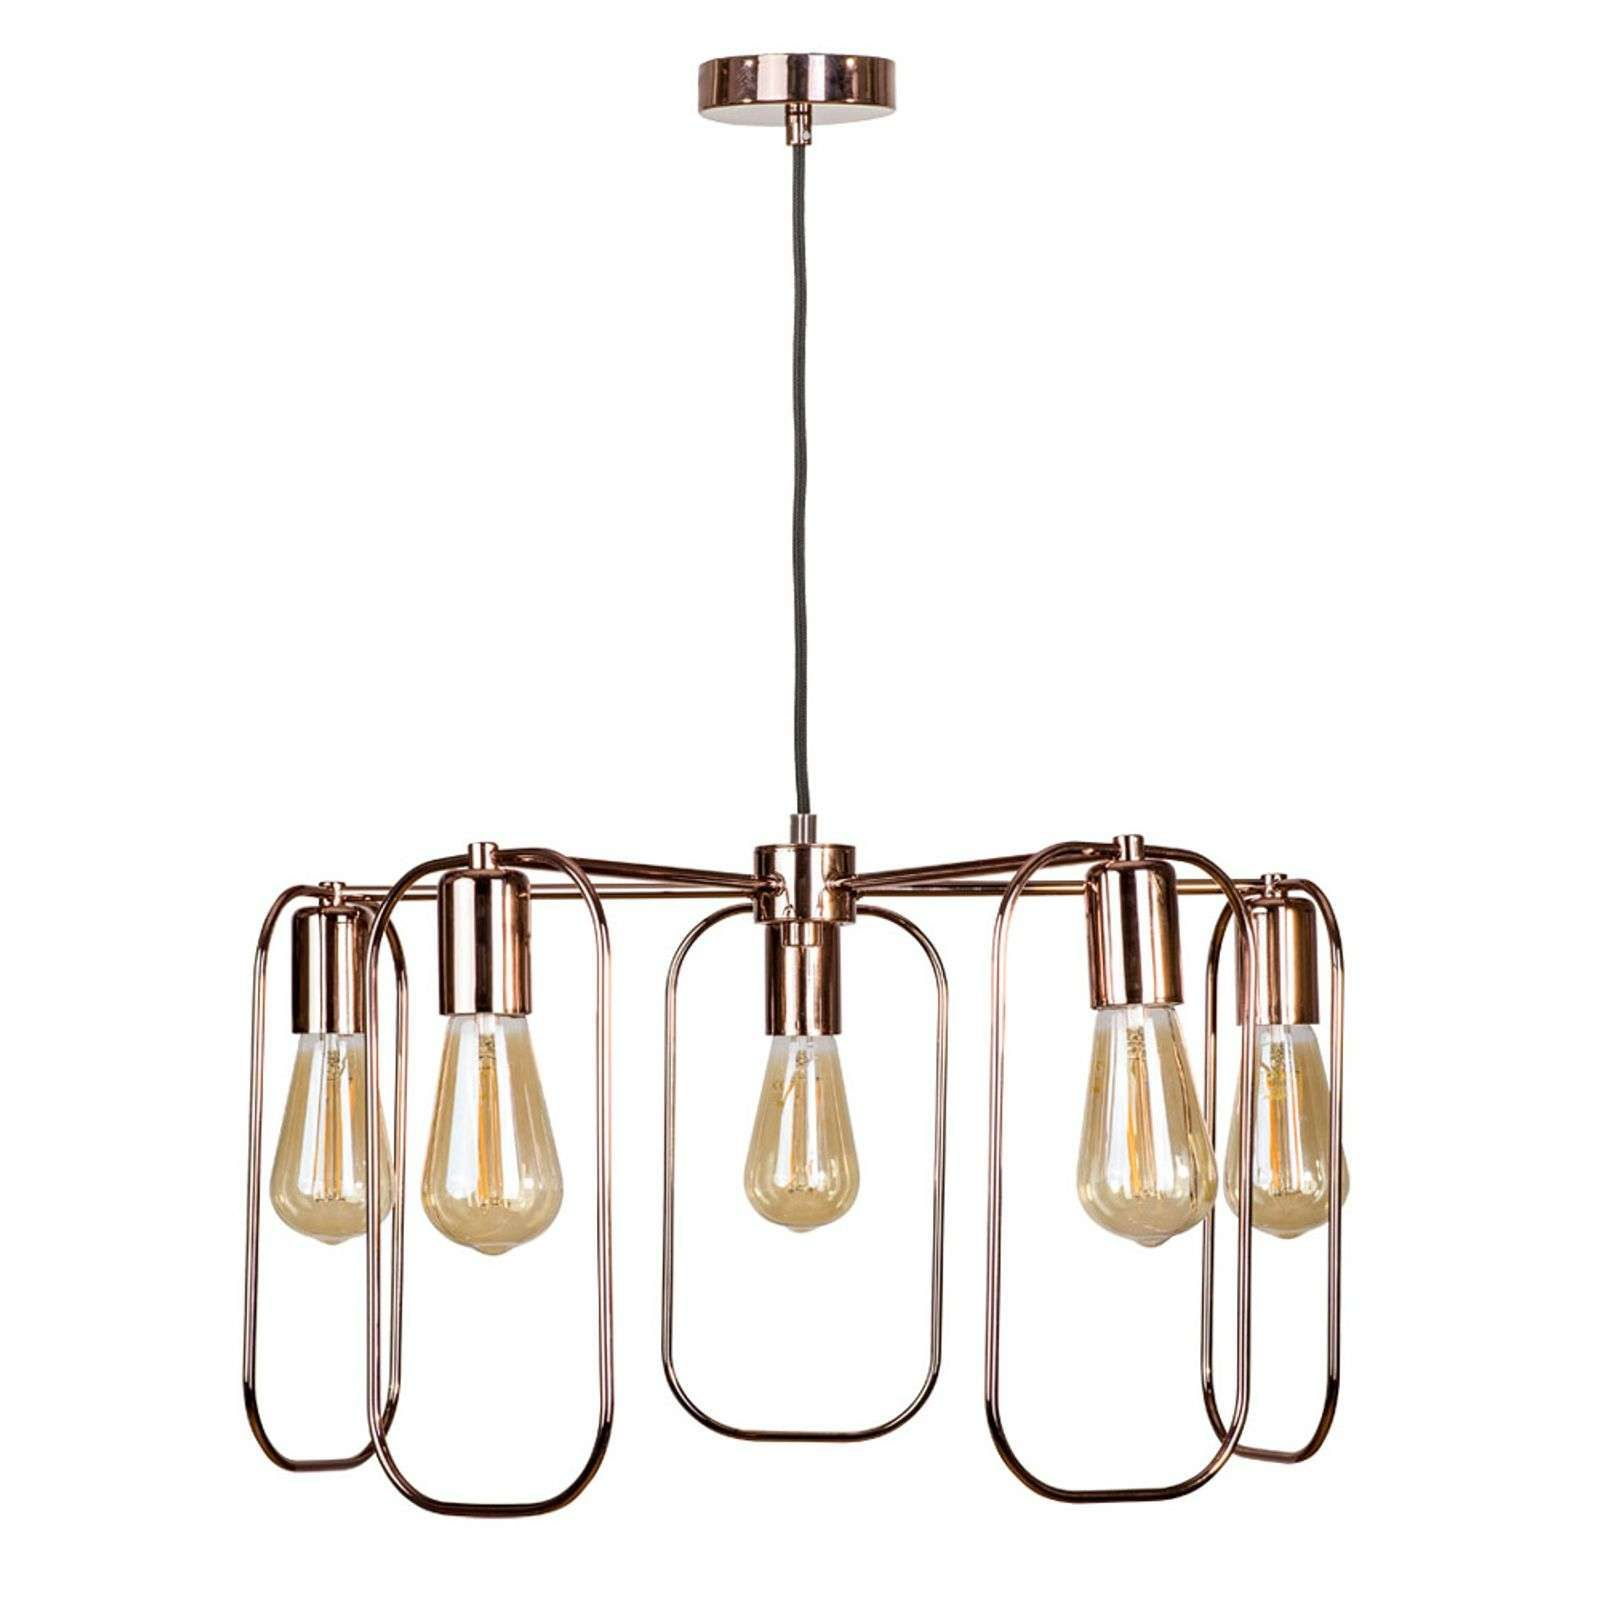 Photo of Neo suspension with 5 lamps, vertical, copper